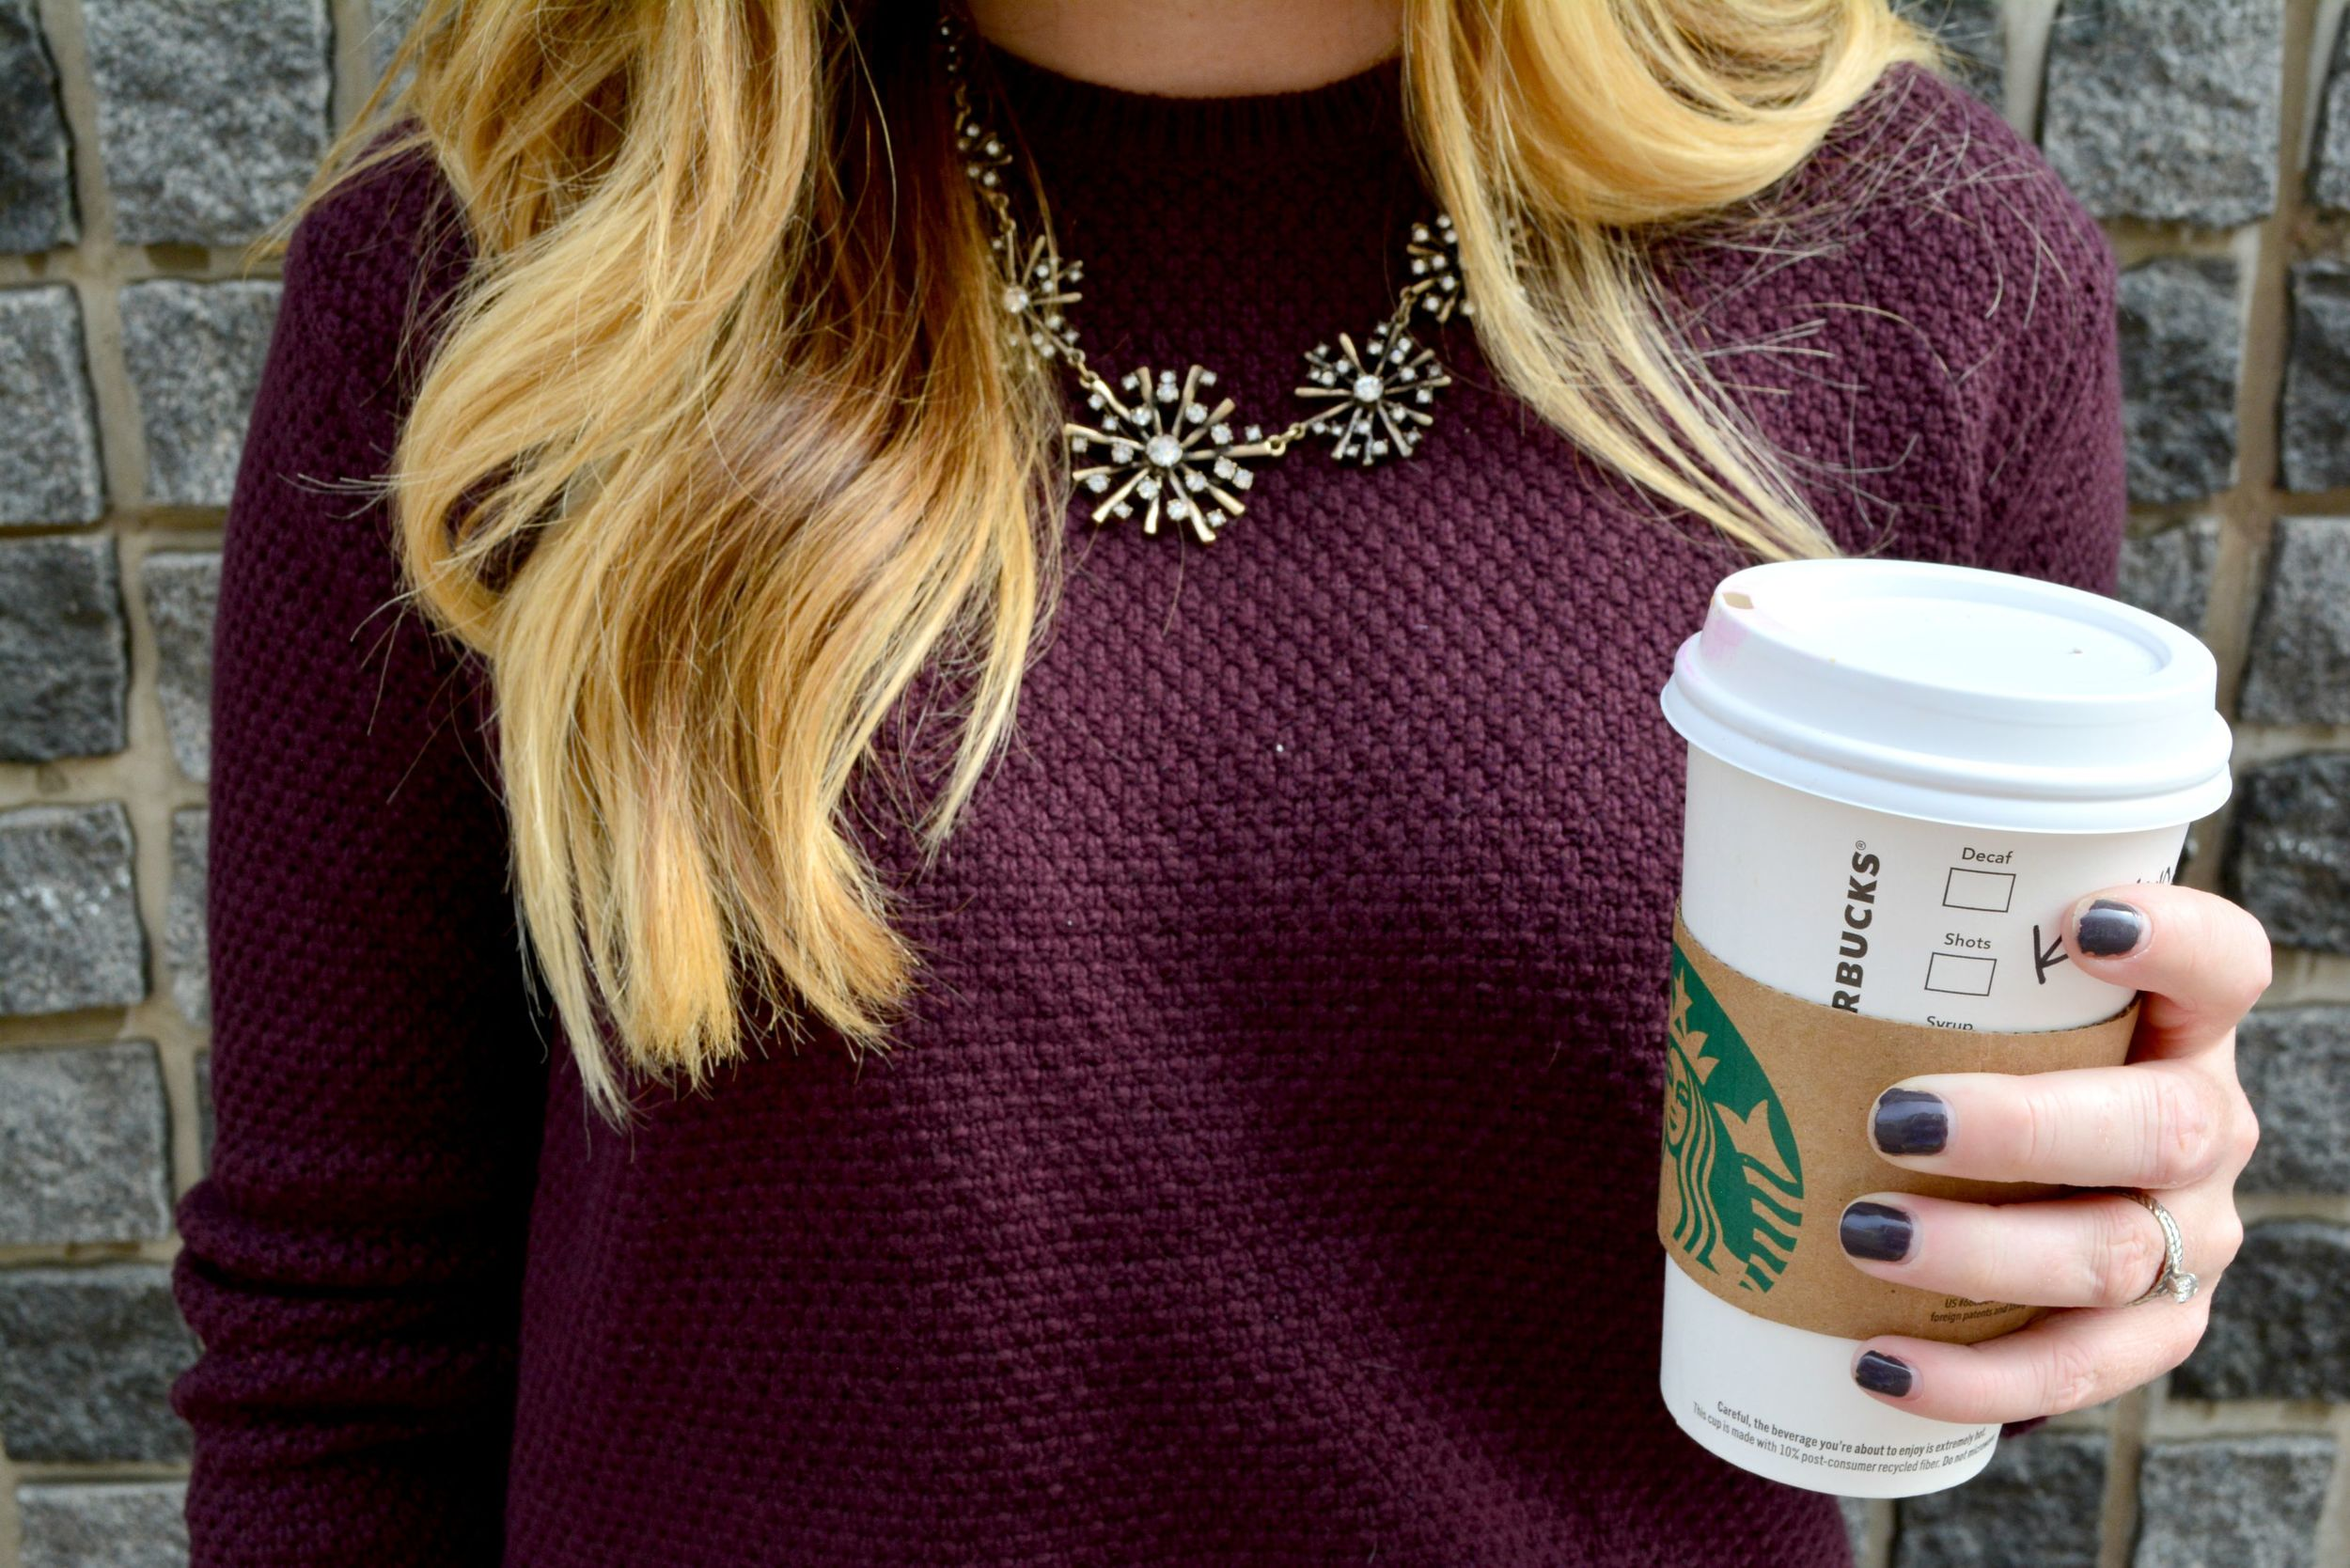 Maroon Loft sweater and statement necklace on Sophisticaited.com